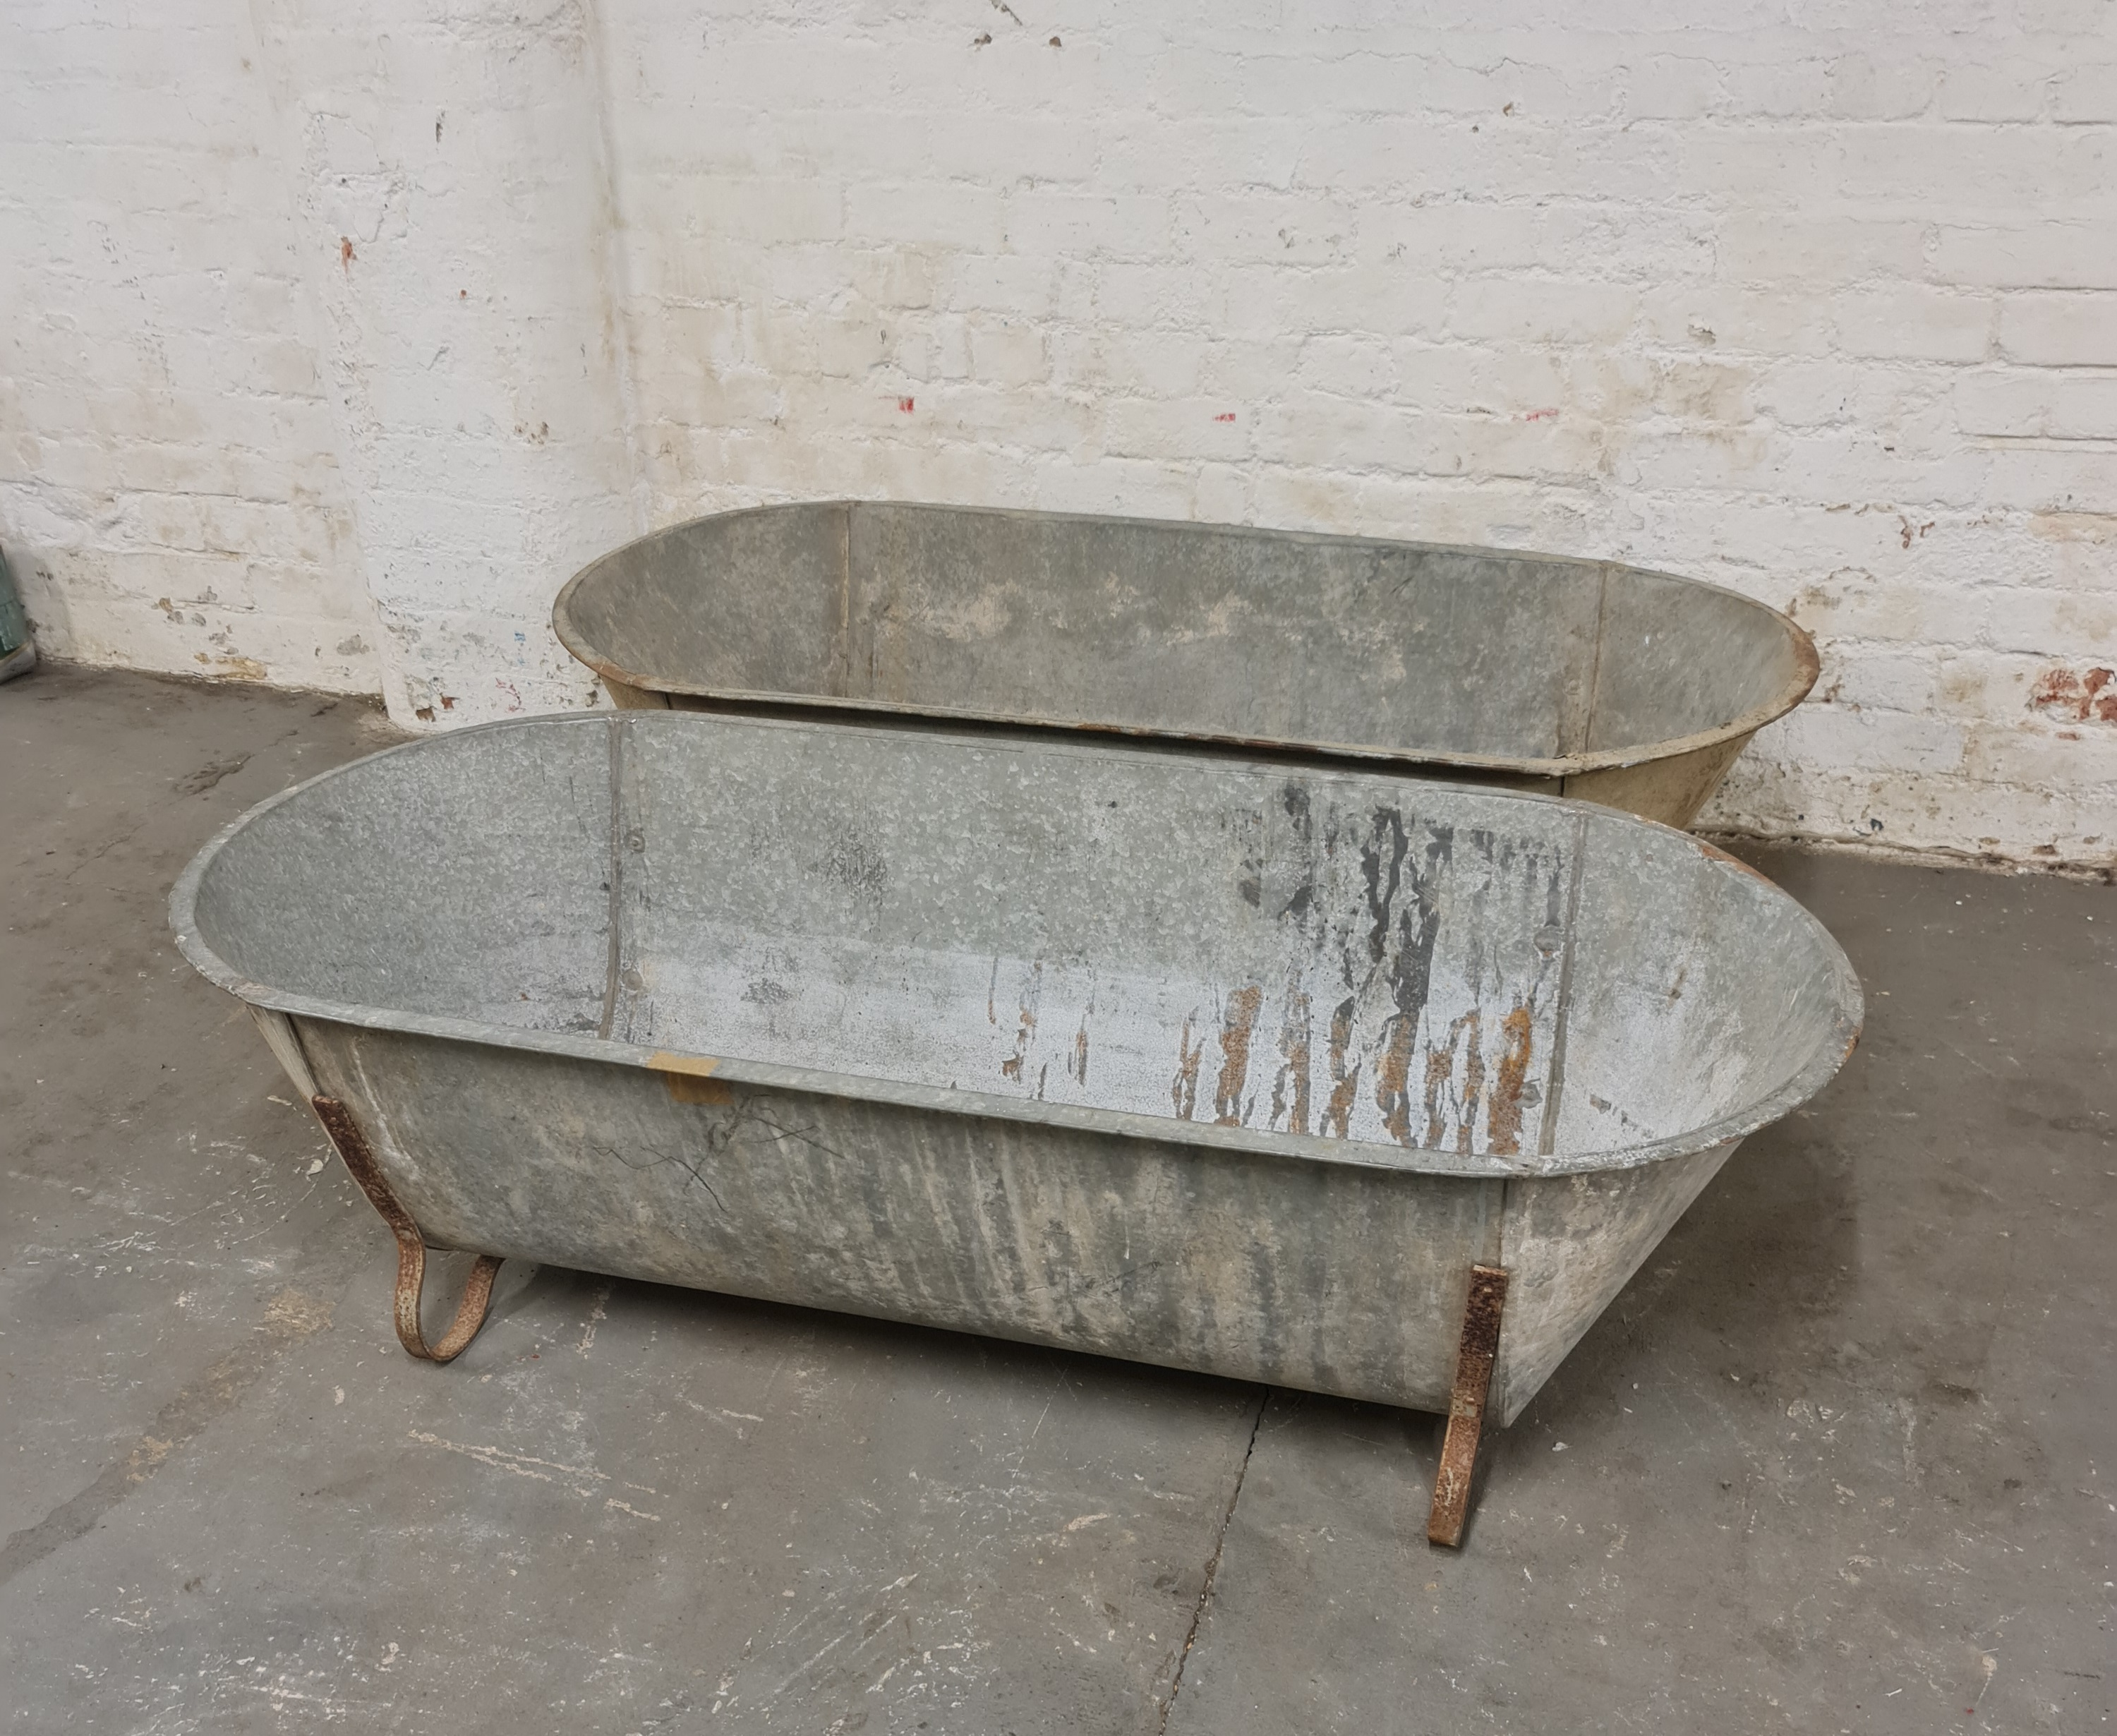 Two large galvanised feeding troughs.